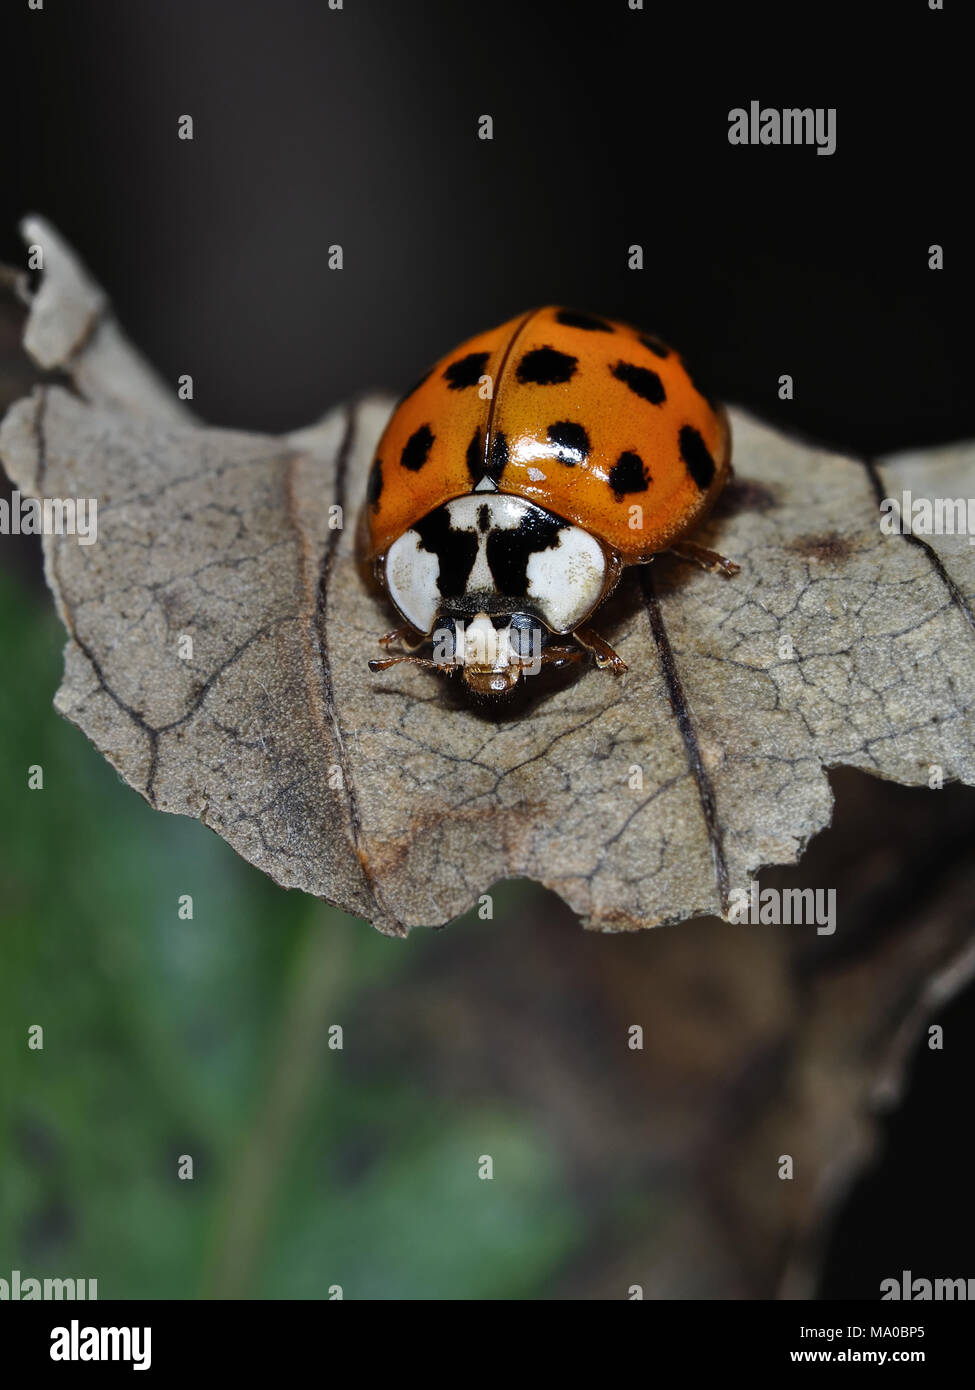 Ladybeetle asiatiques (Harmonia axyridis) sur une feuille, close-up view Photo Stock